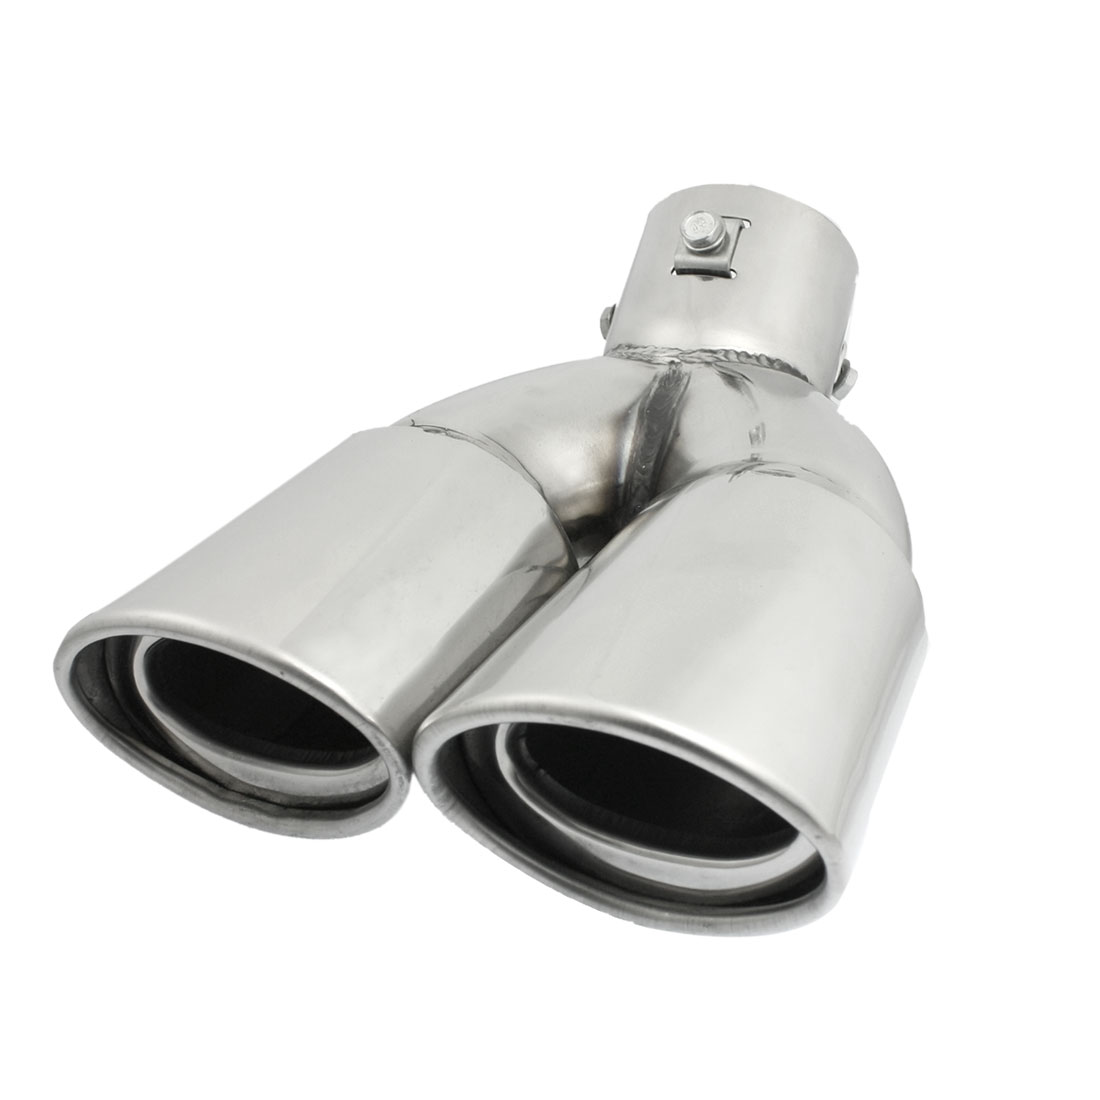 "Silver Tone 2.4"" Diameter Inlet Exhaust Pipe Silencer Tail Muffler Tip"